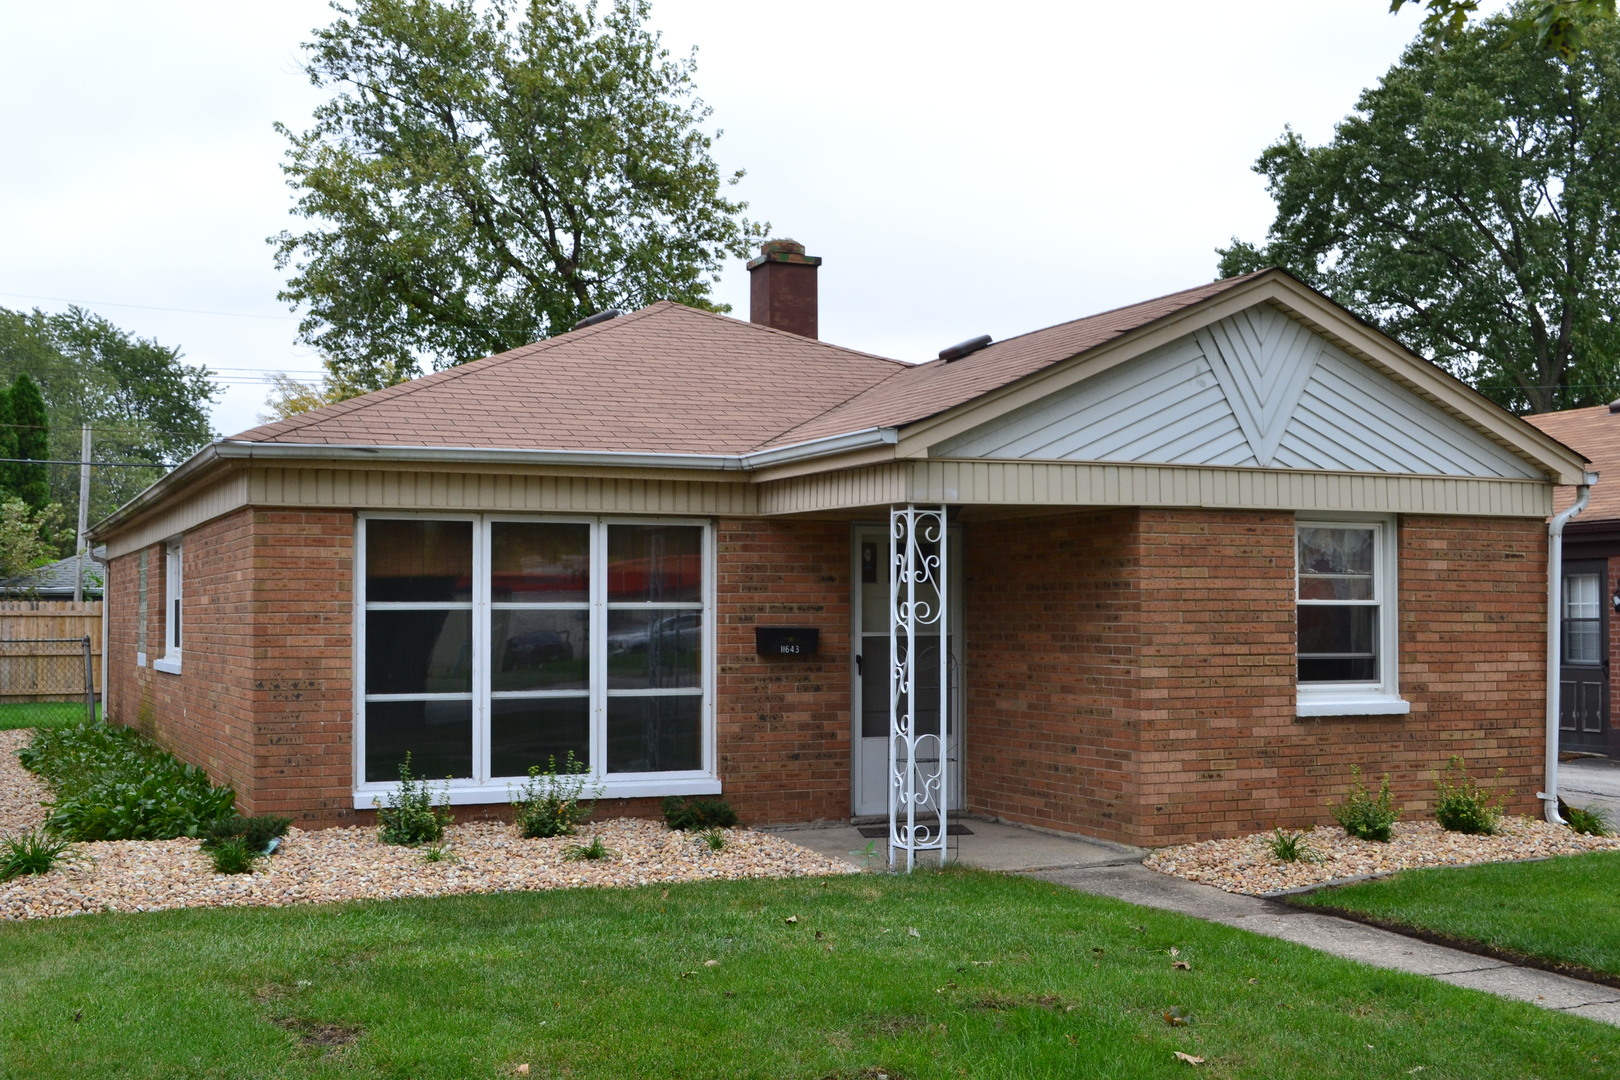 Photo of 11643 South Kedzie Avenue MERRIONETTE PARK IL 60803